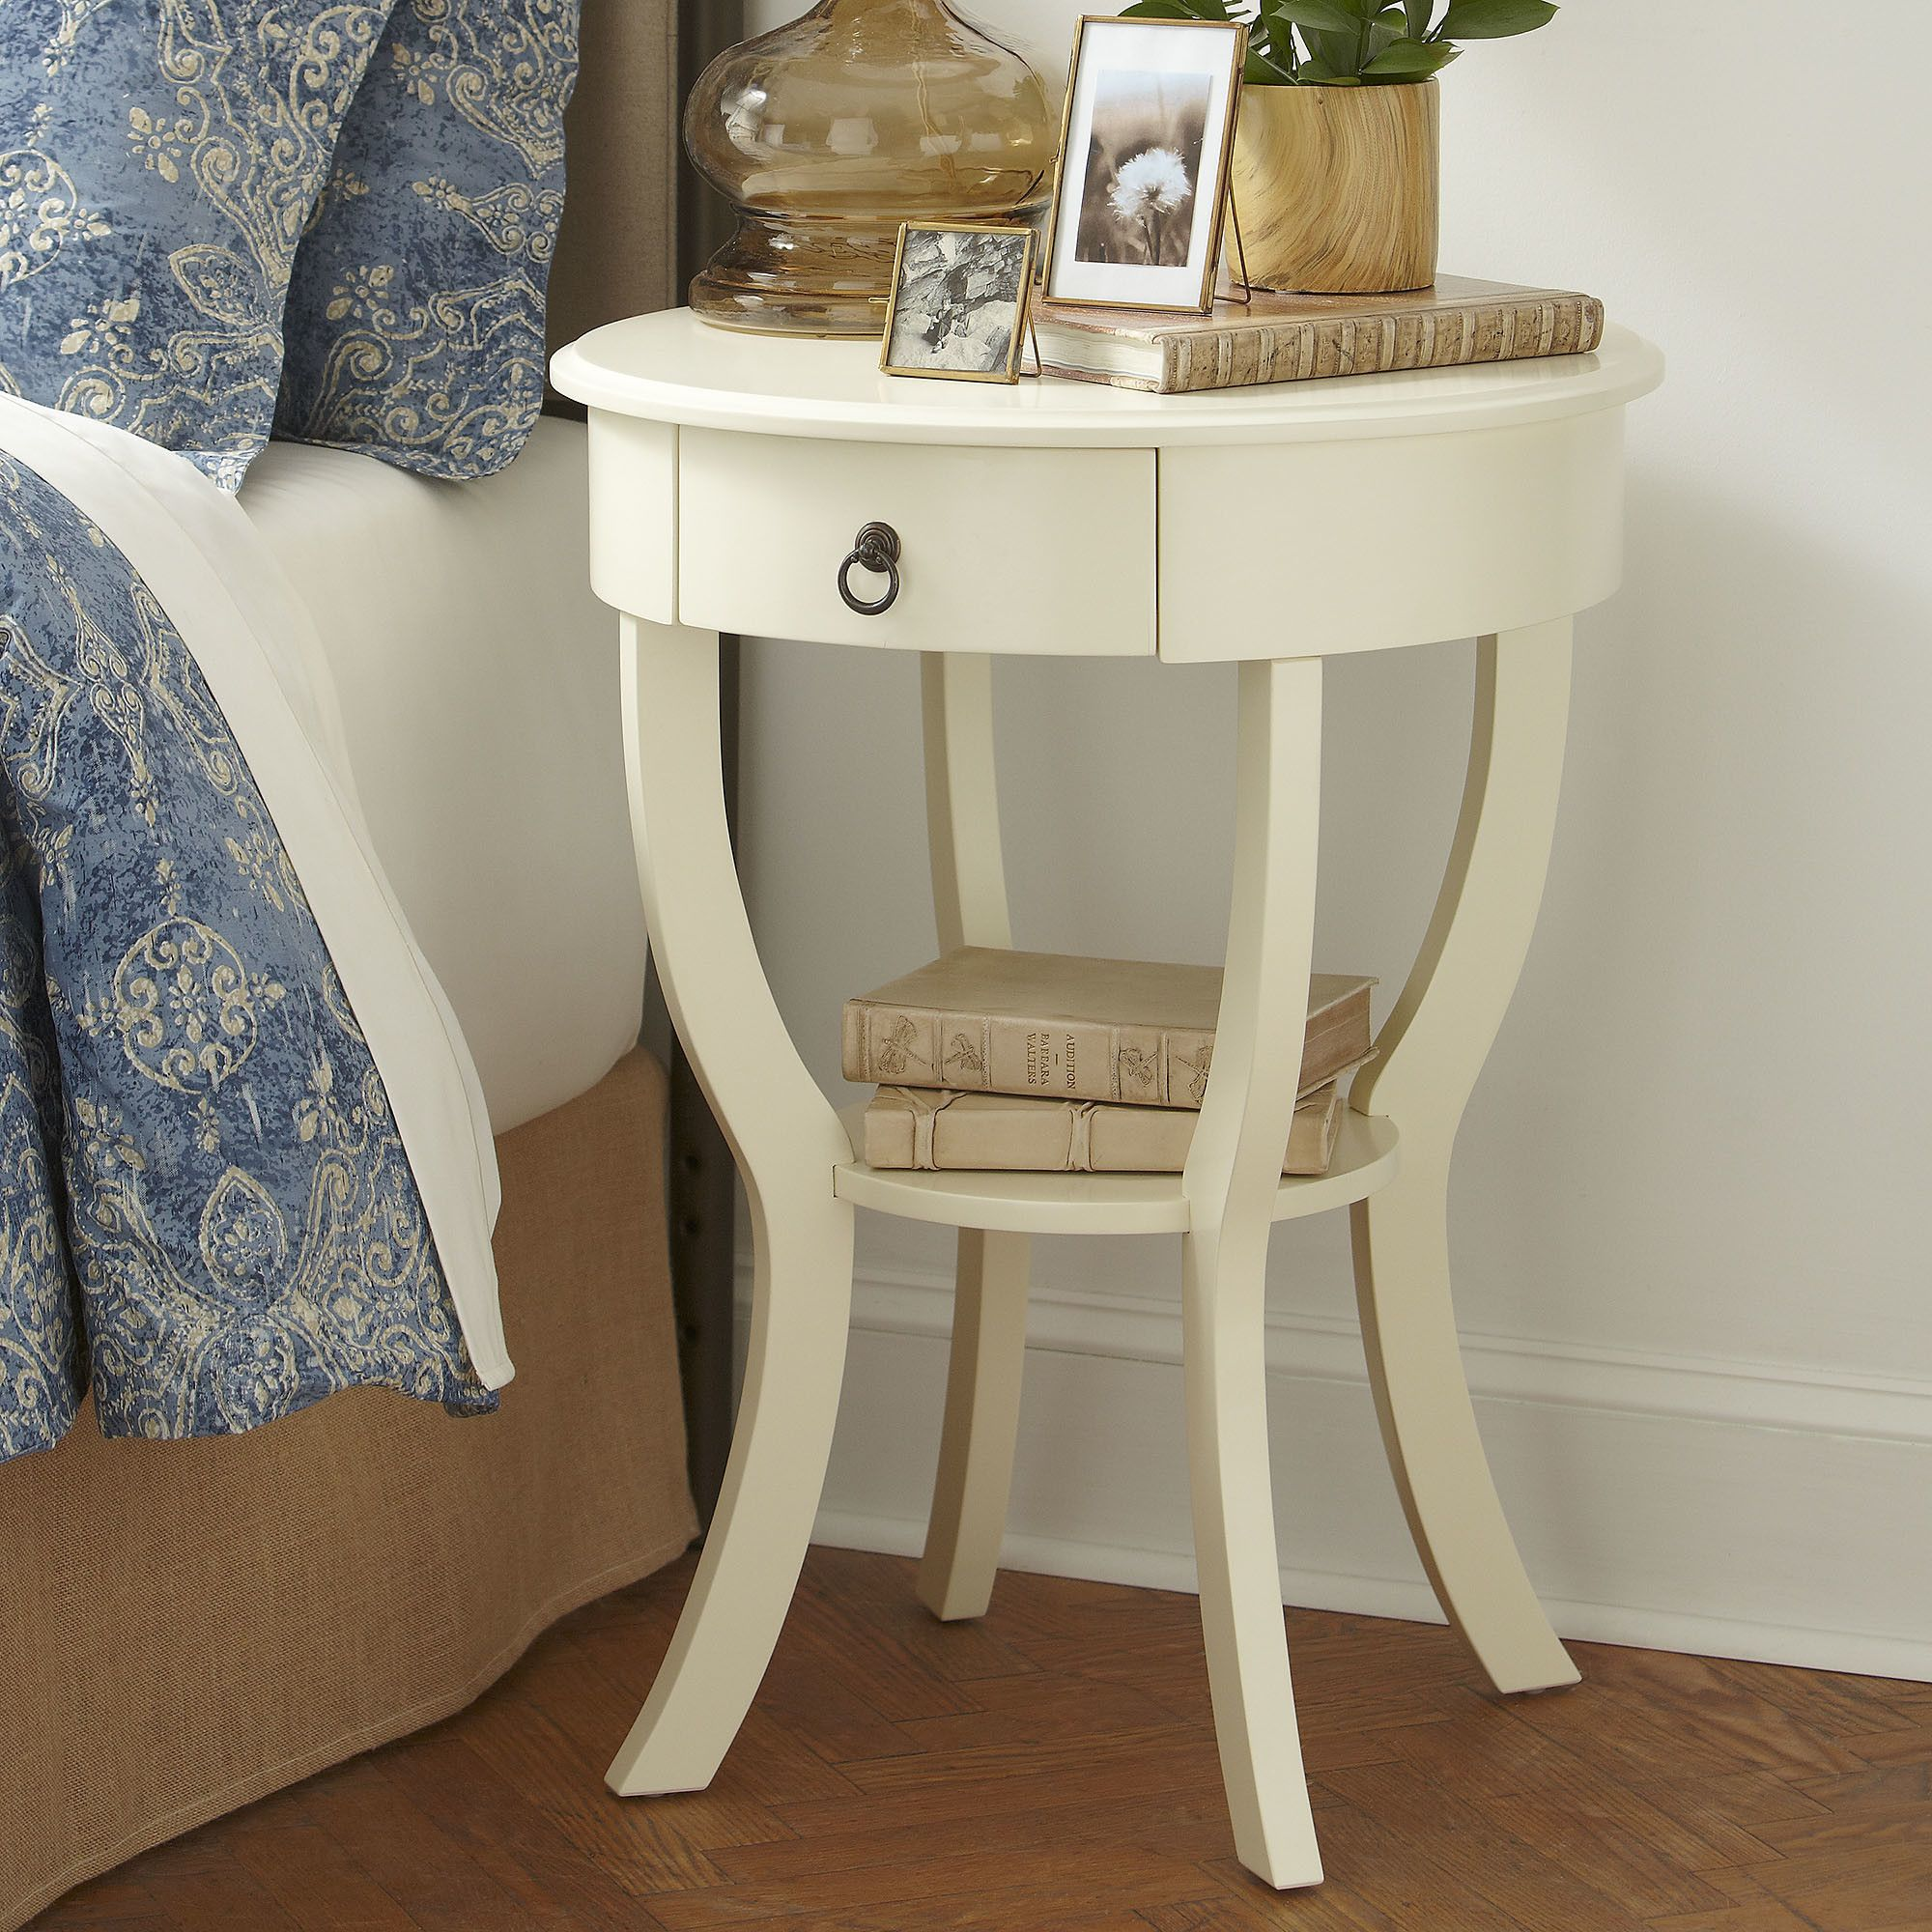 Birch Lane Keane Side Table Furniture End Tables End Tables With Storage [ 2000 x 2000 Pixel ]